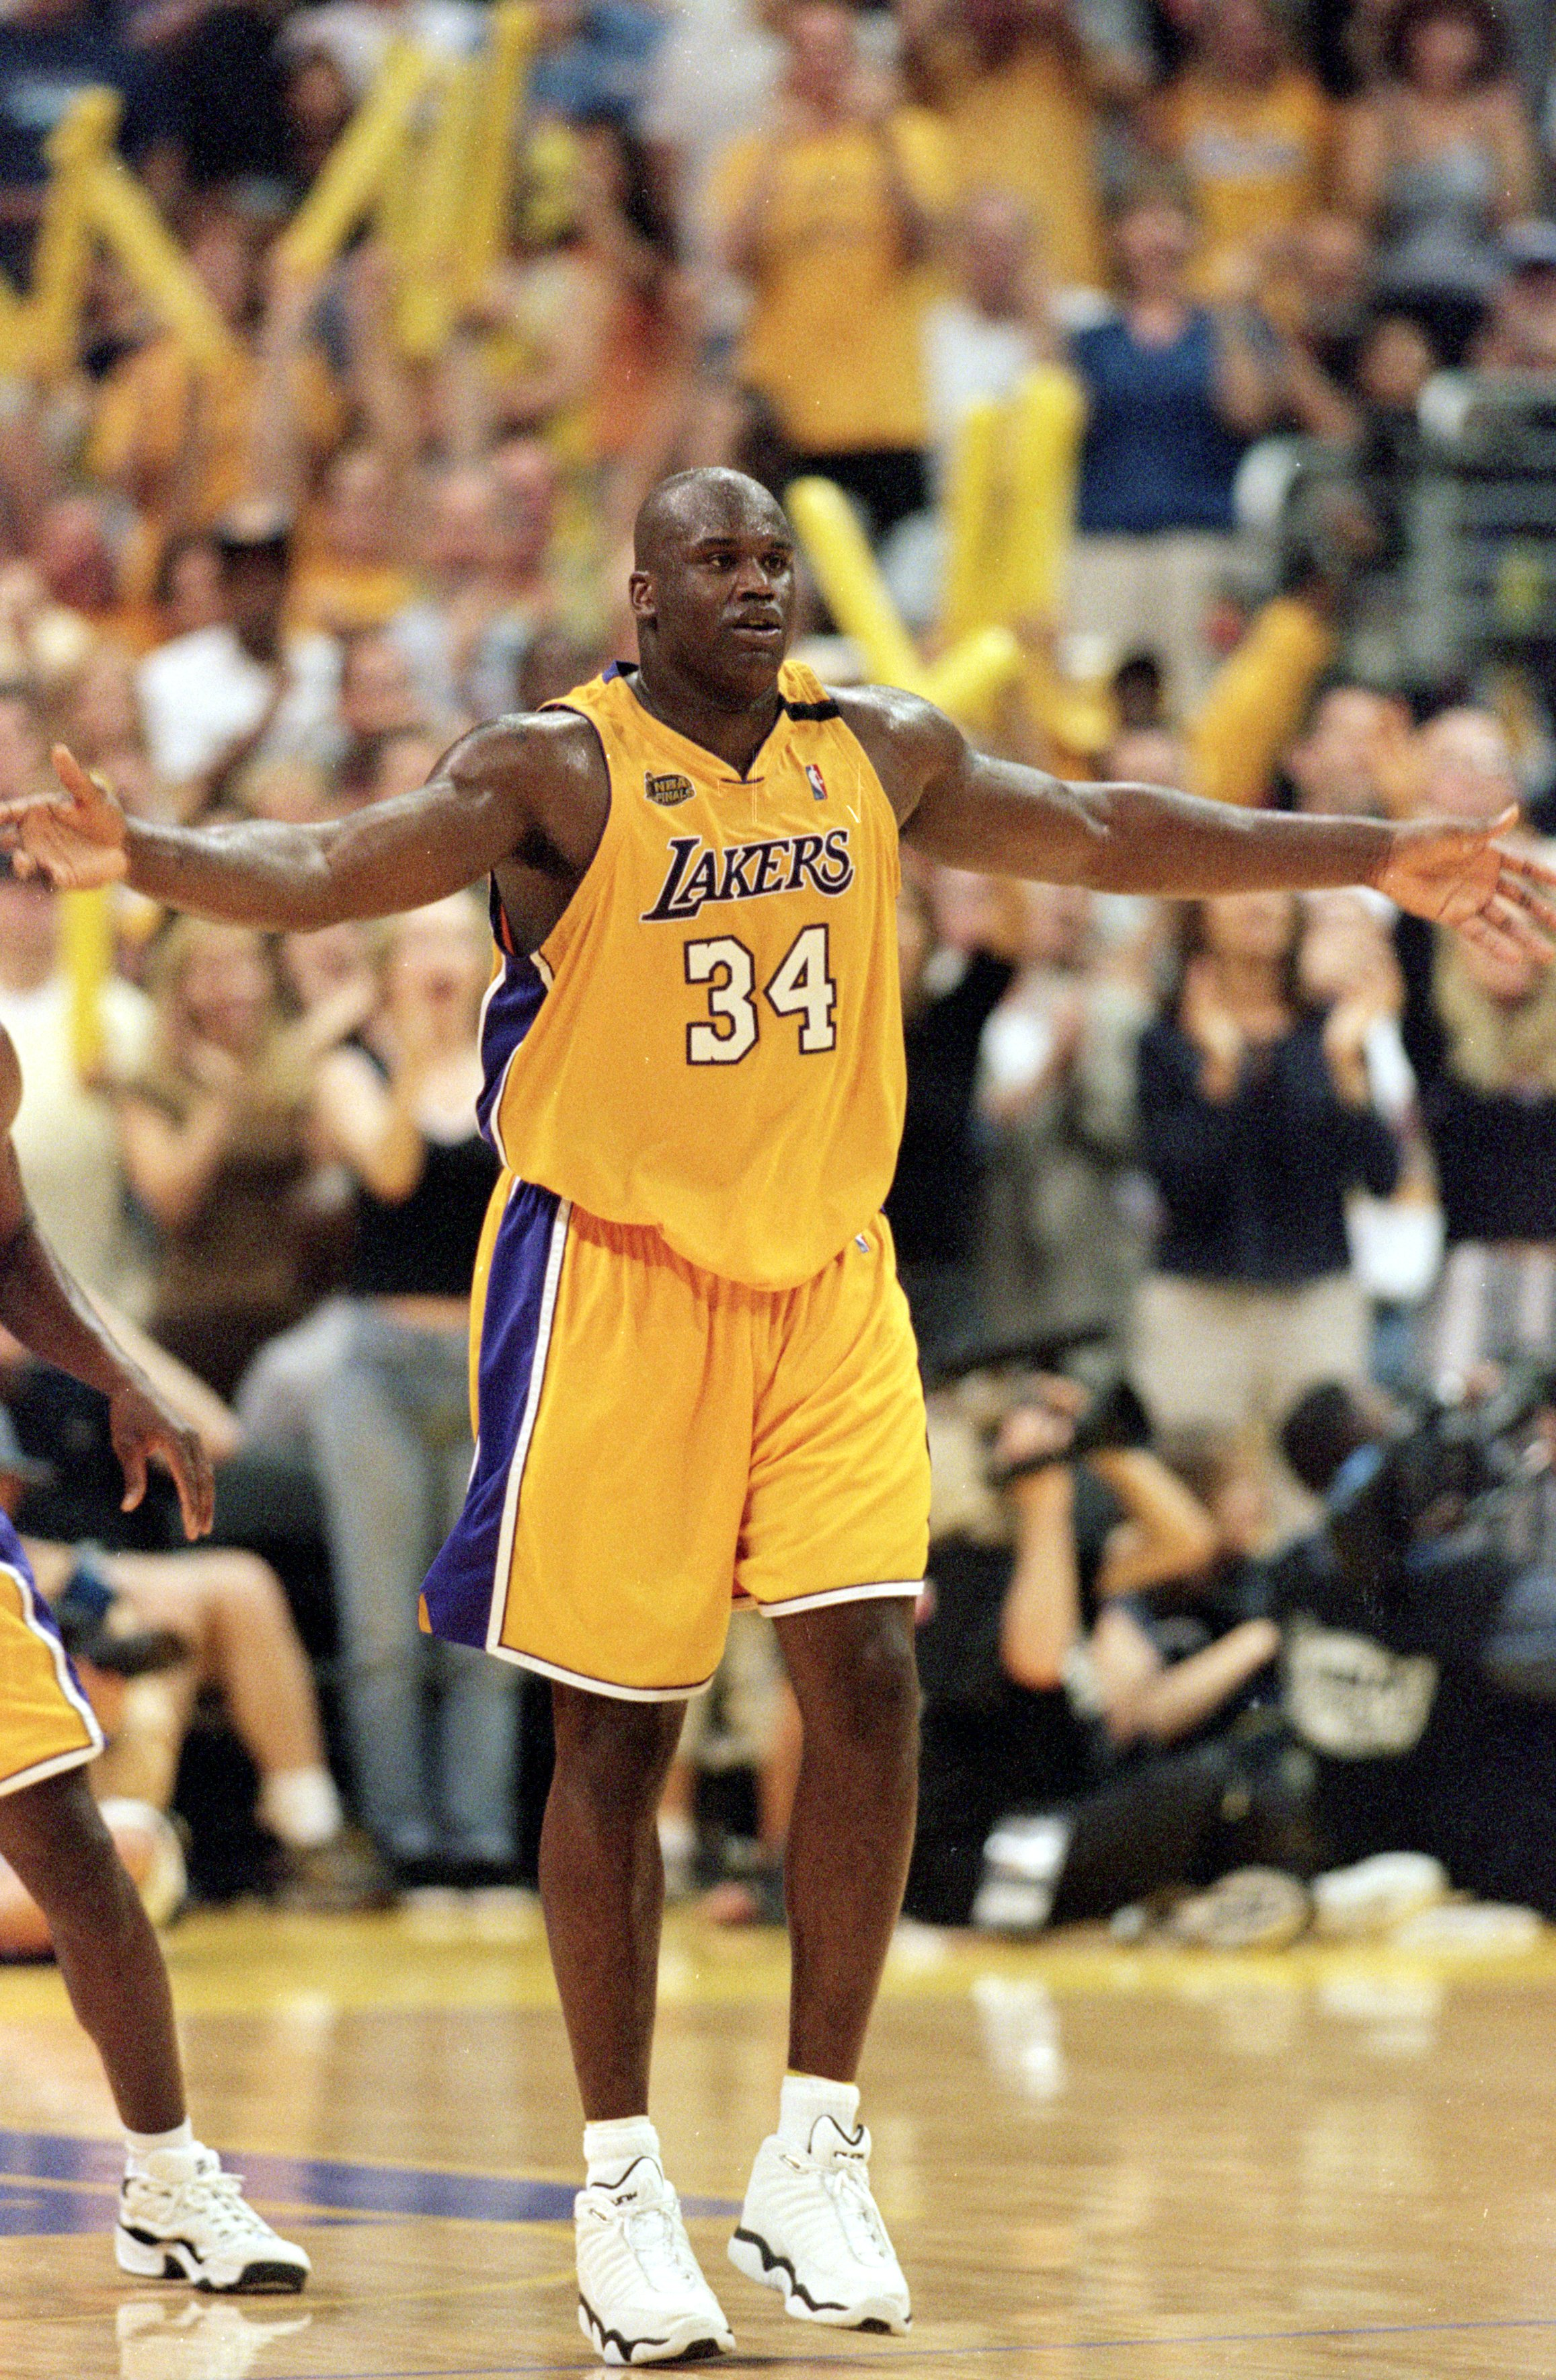 19 Jun 2000:  Shaquille O''Neal #34 of the Los Angeles Lakers celebrates on the court during the NBA Finals Game 6 against the Indiana Pacers at the Staples Center in Los Angeles, California.  The Lakers defeated the Pacers in 116-111.    NOTE TO USER: It